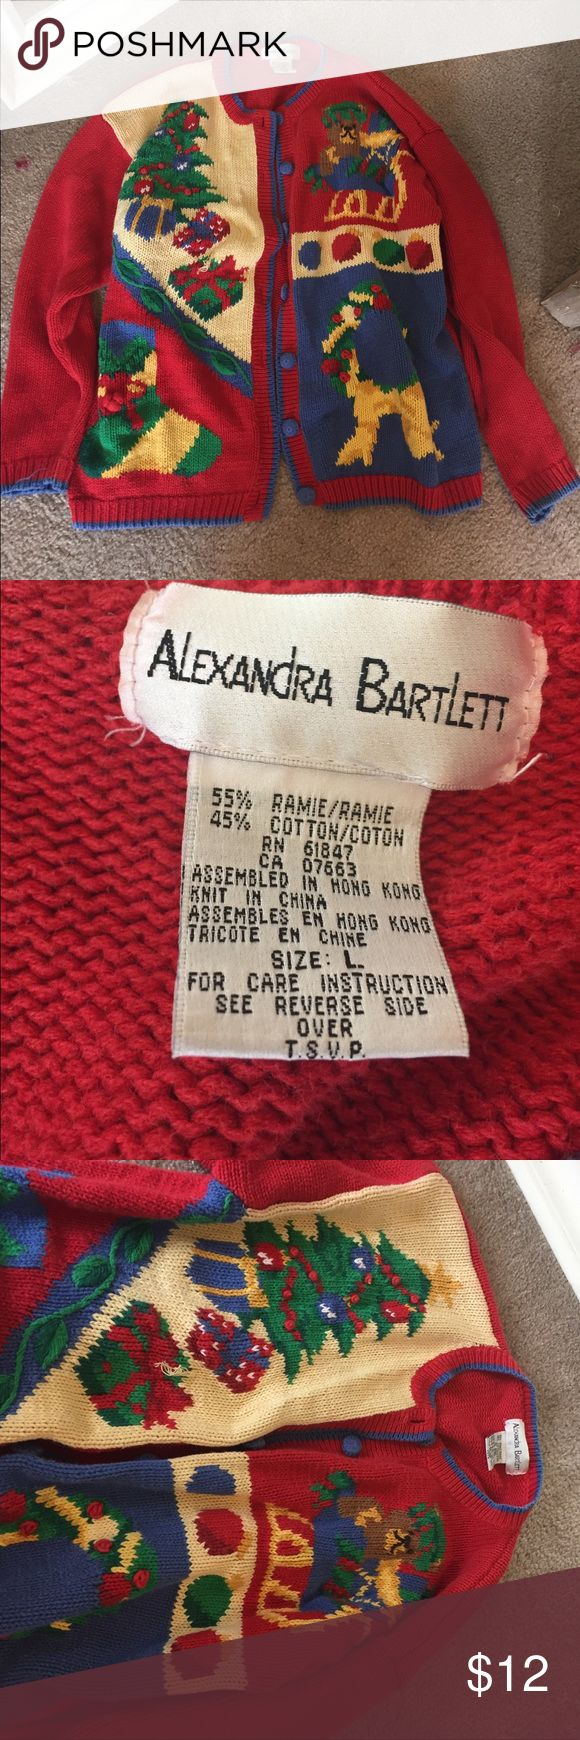 Tacky Christmas Sweater 🎄 Fun, comfy, tacky Christmas sweater! Only worn once for a tacky Christmas party! Make an offer or bundle w/ other items to save more 💕 Alexandra Bartlett Sweaters